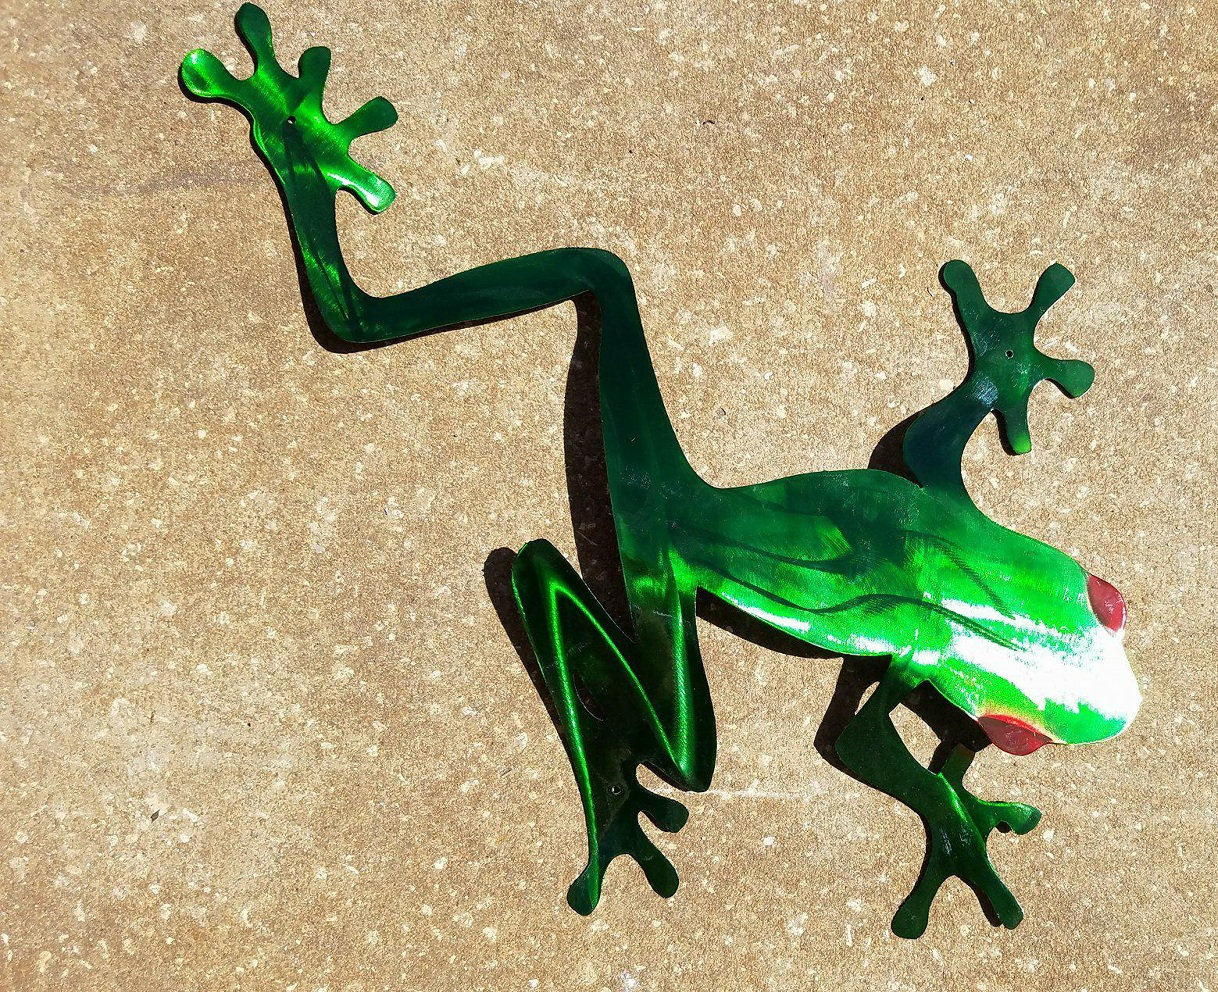 Tree Frog Wall Art, Tree Frog Metal Art, Stainless Steel Wall Decor ...